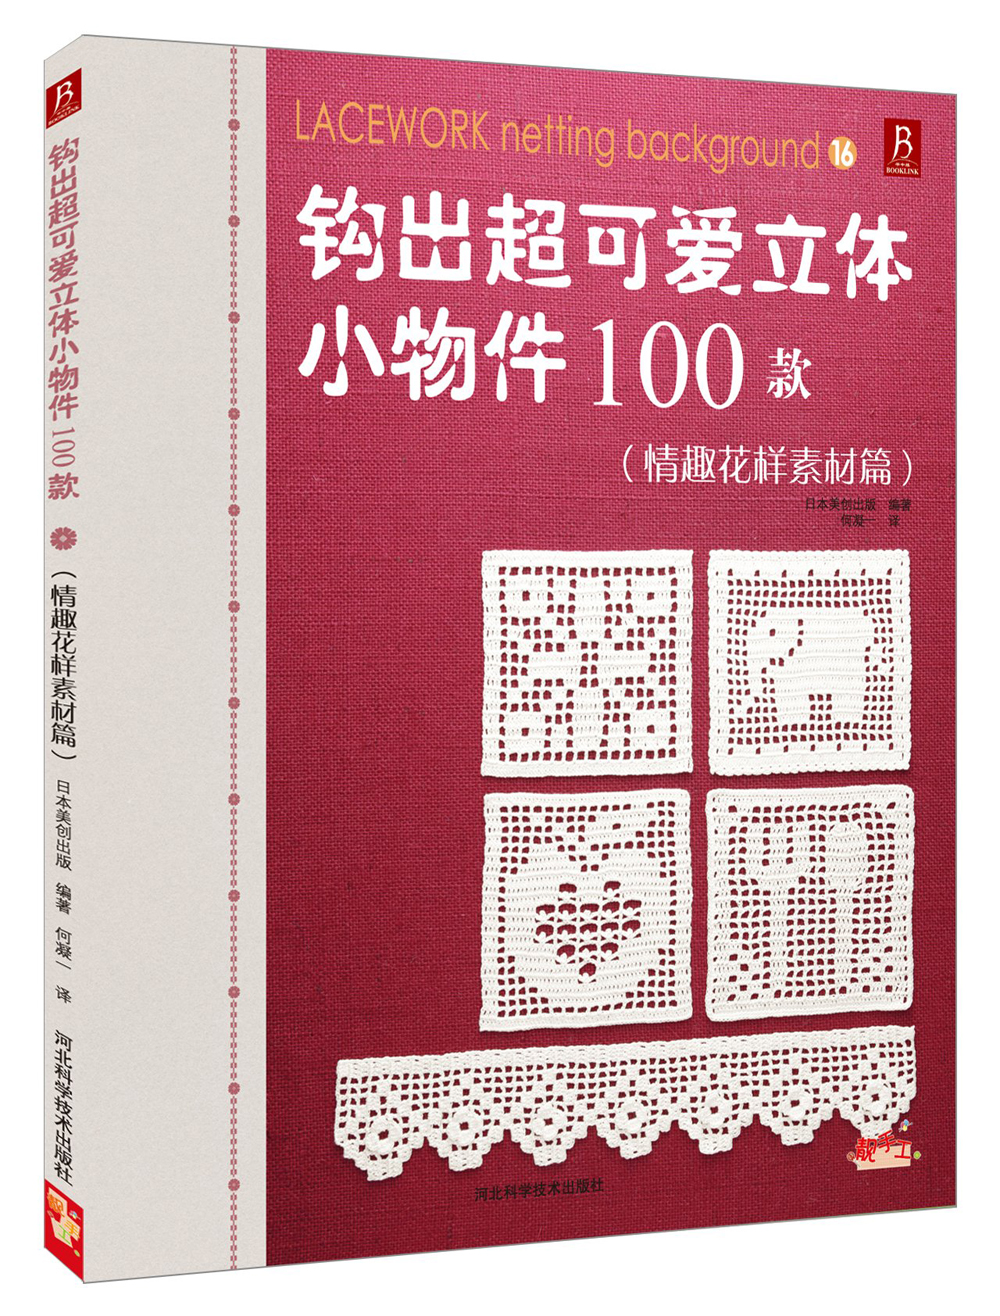 LACEWORK Netting Background/ Weaving Super-cute 3d Small Objects 100 Models Chinese Knitting Book